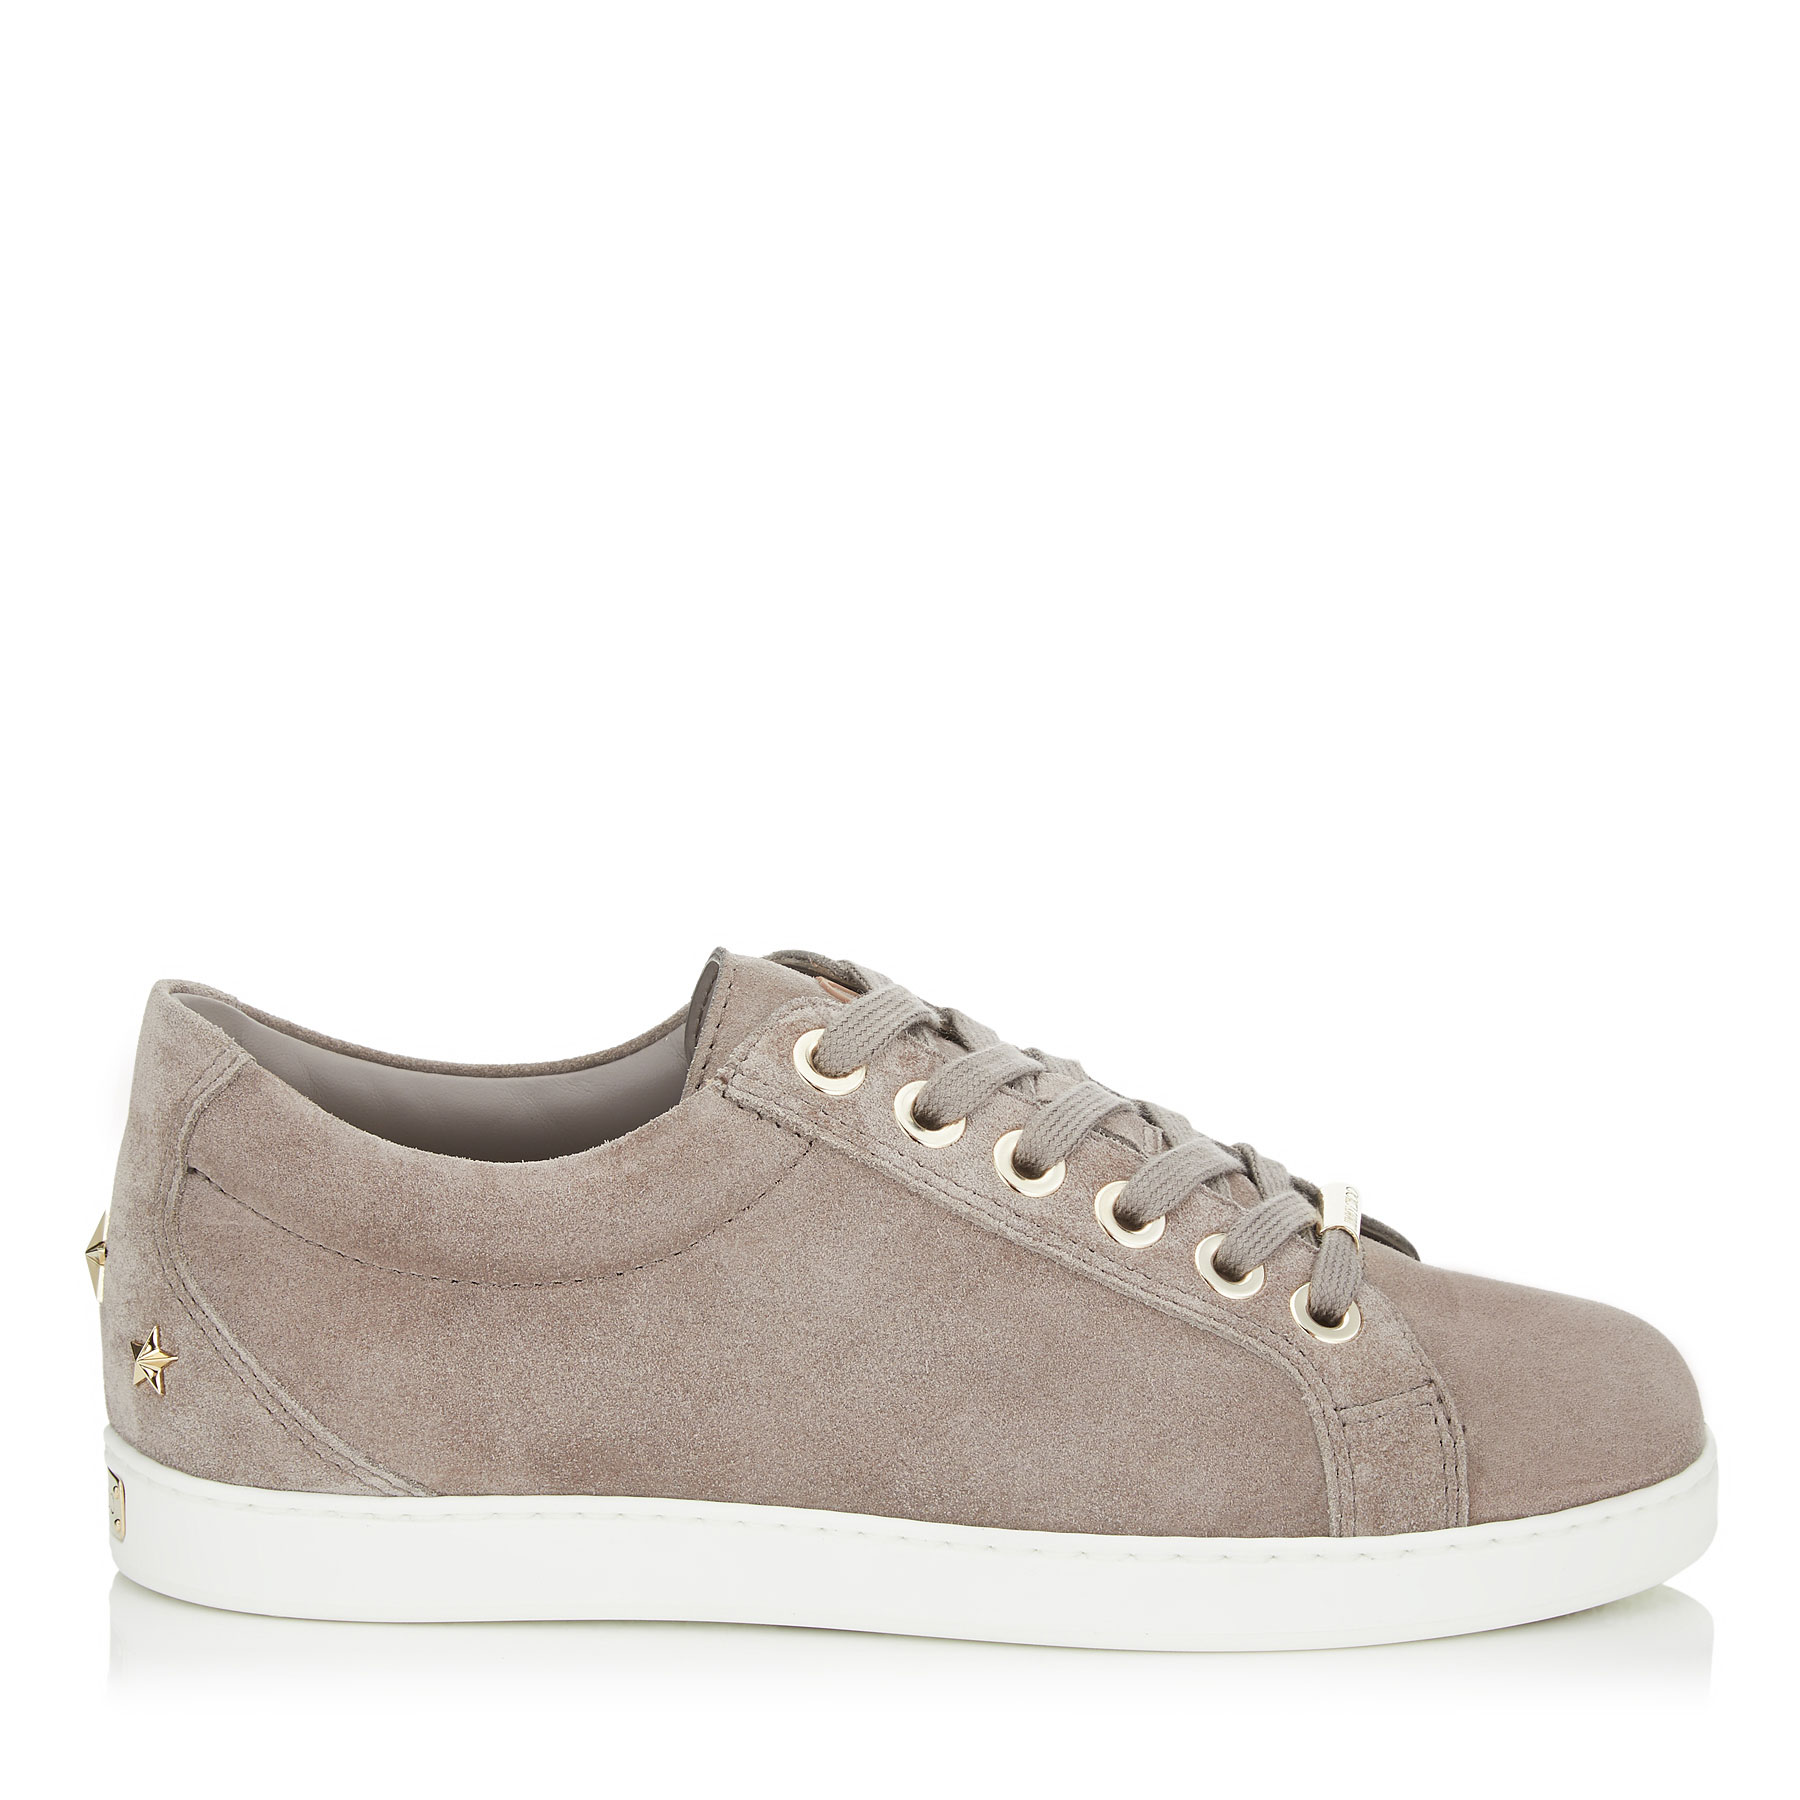 CASH/F Opal Grey Velvet Suede Low Top Trainers by Jimmy Choo